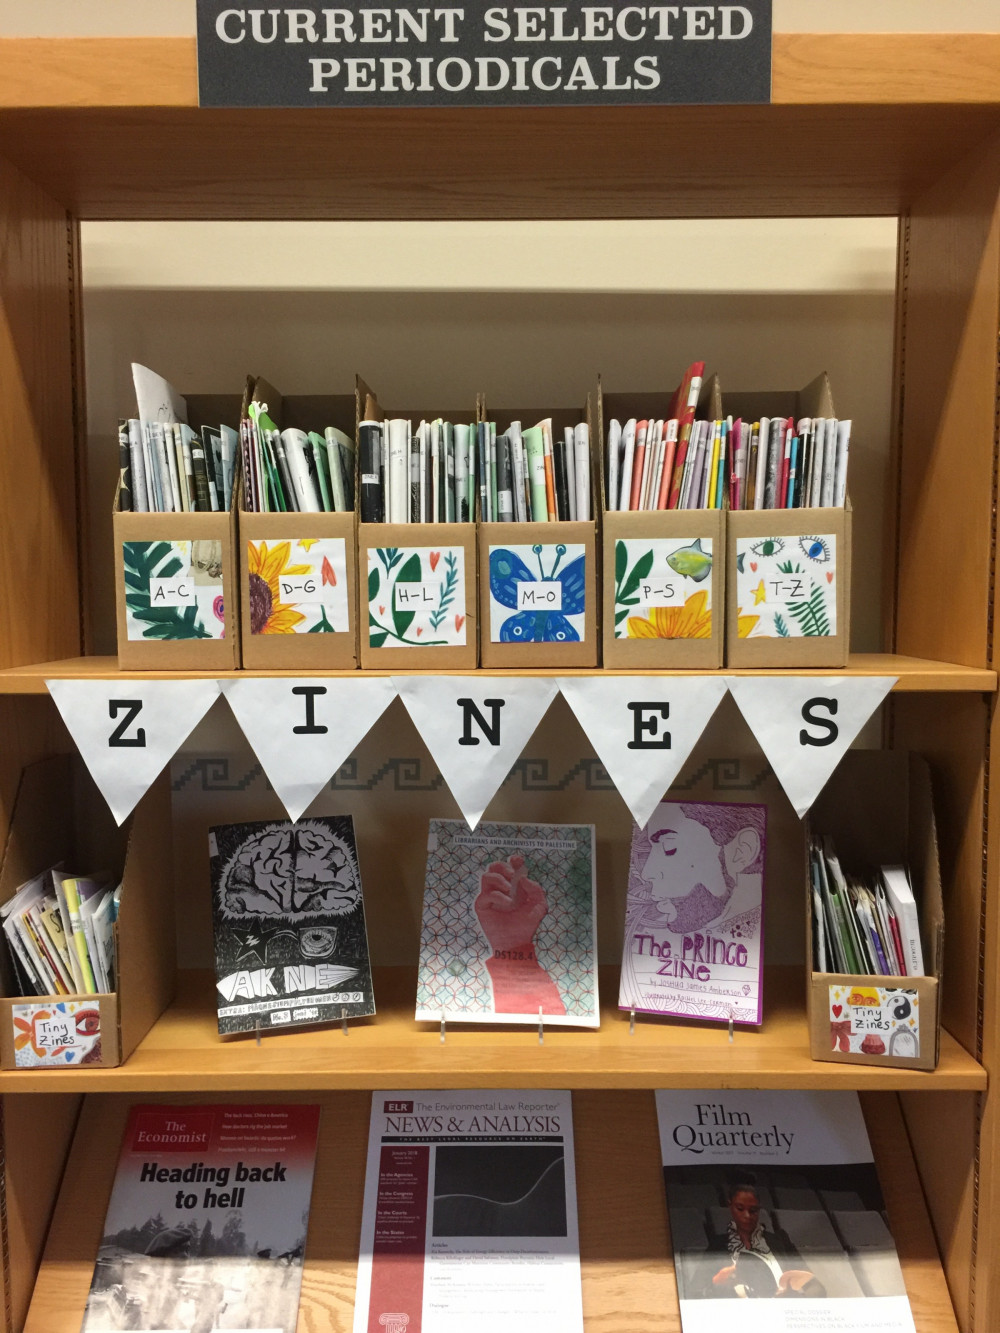 COA Thorndike Library collects zines from around the world. Members of the public are invited to...